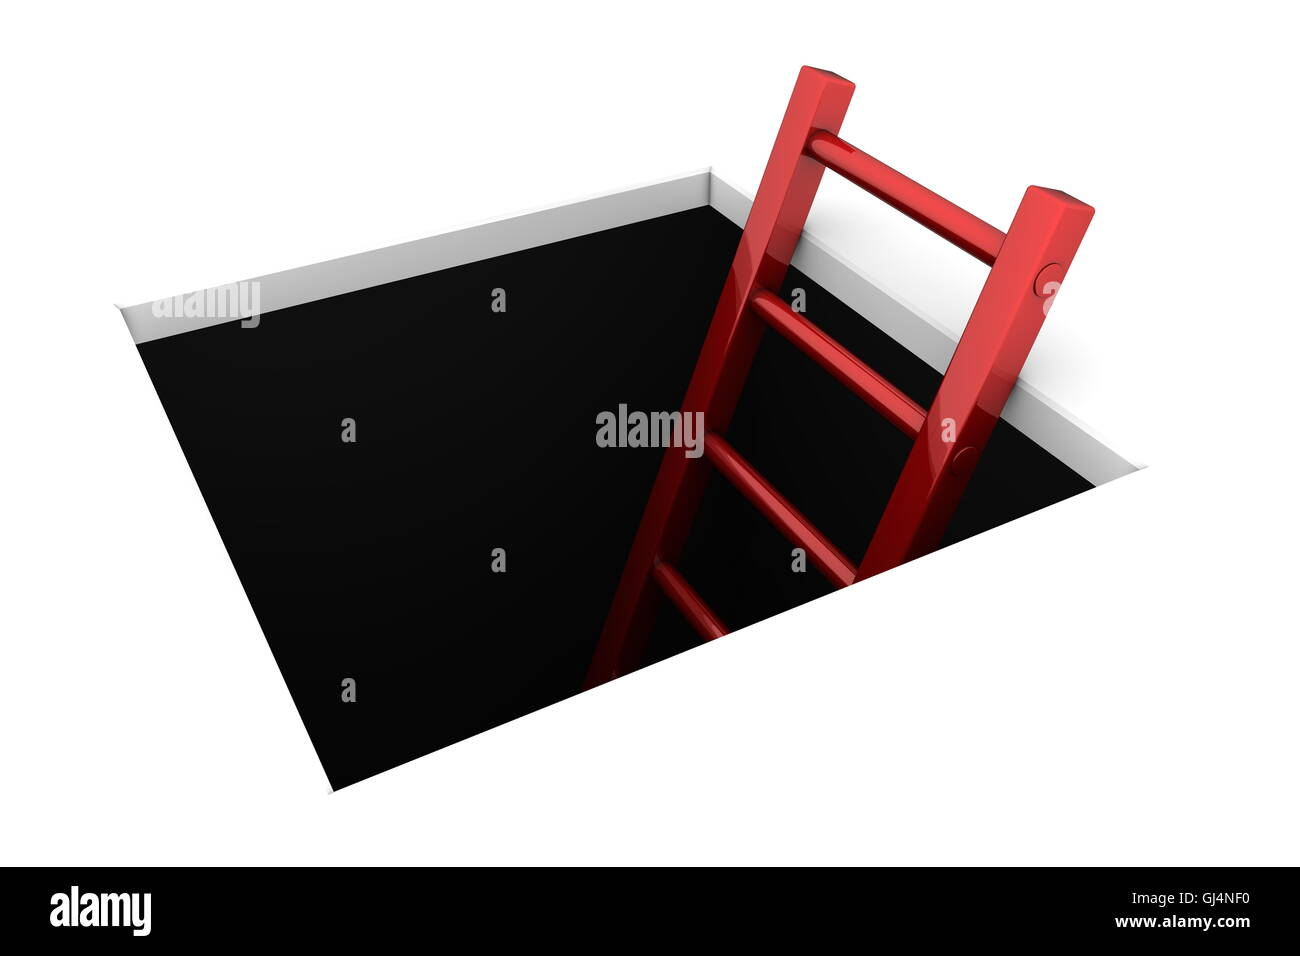 Climb out of the Hole - Shiny Red Ladder - Stock Image